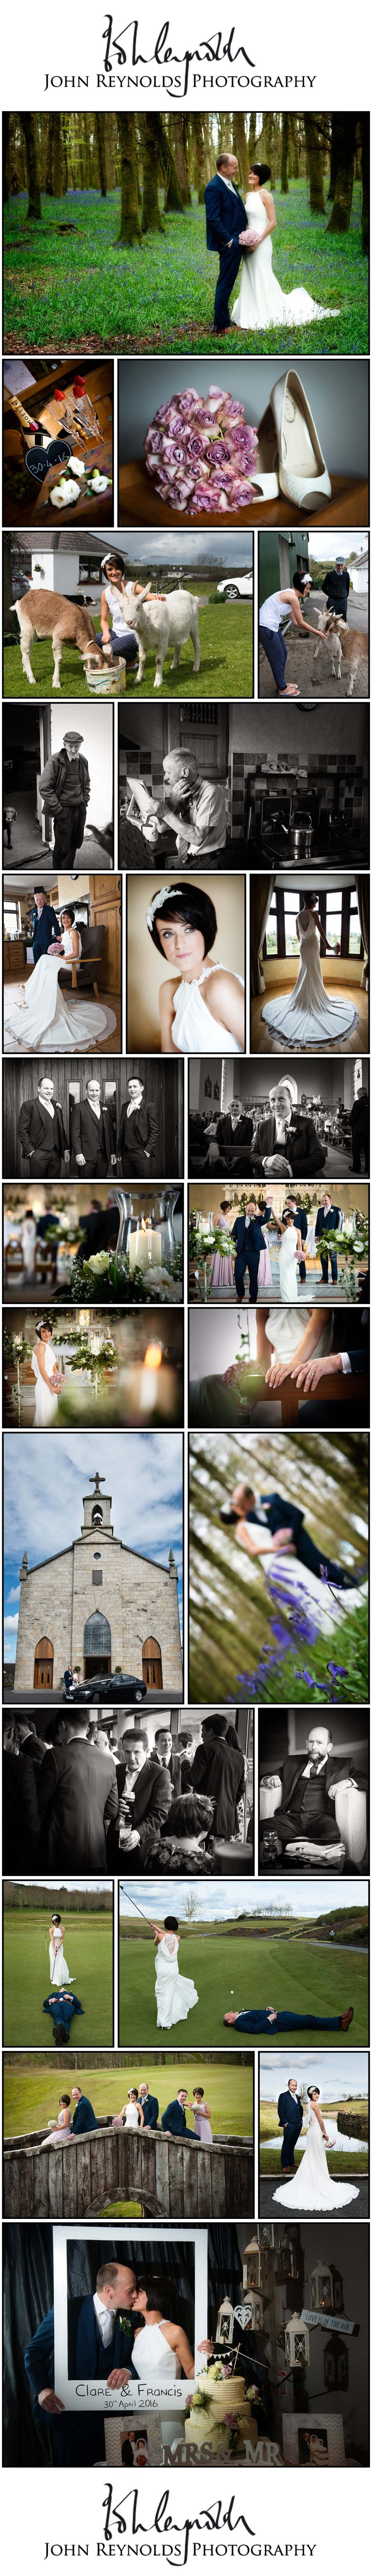 Blog Collage-Clare&Francis